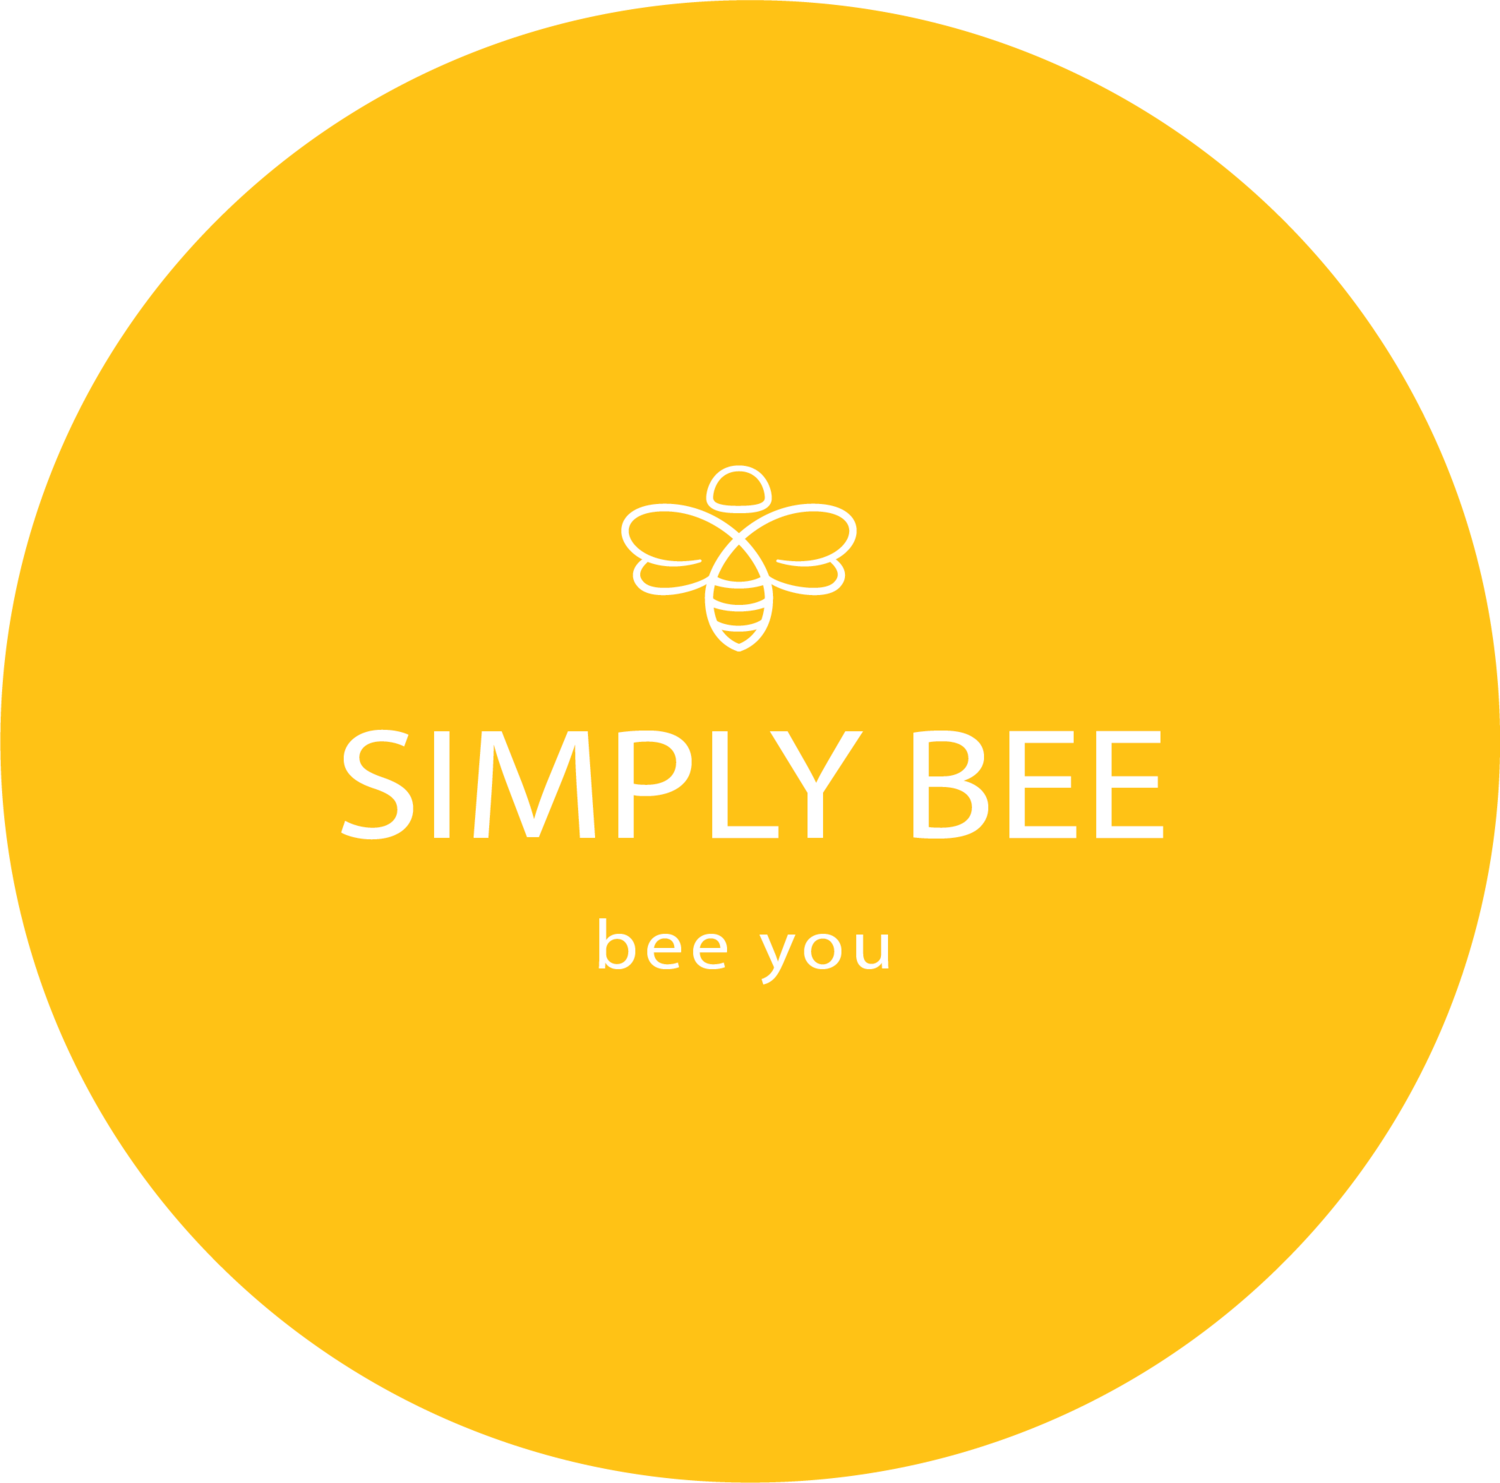 Simply Bee